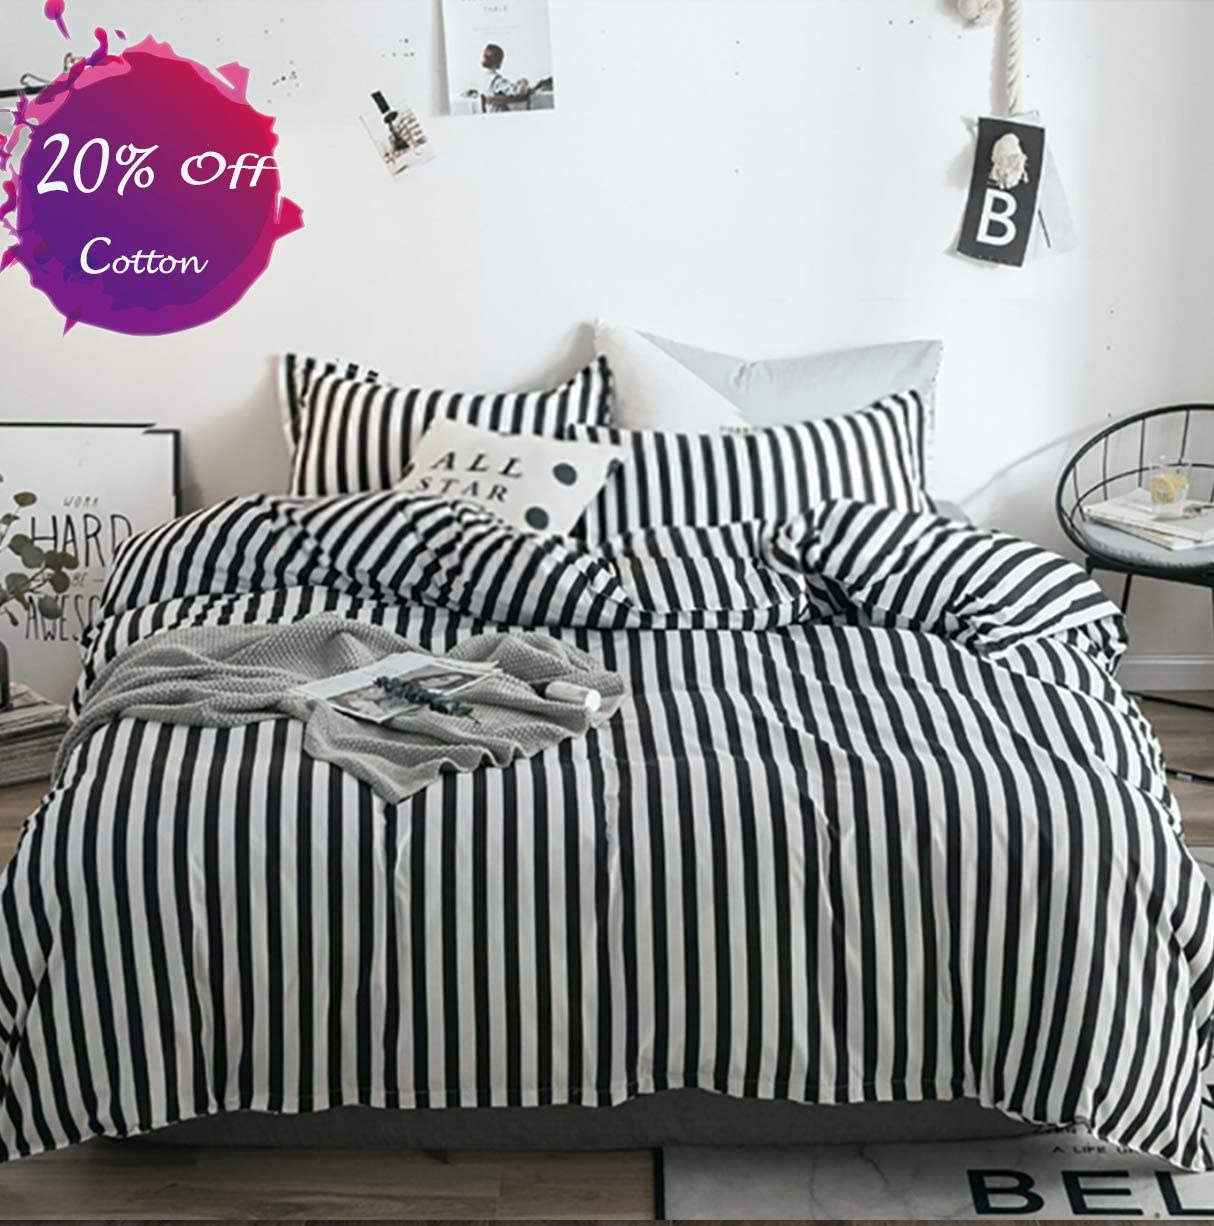 Black White Stripe 100/% Cotton High Quality Fabric Material *3 Sizes*